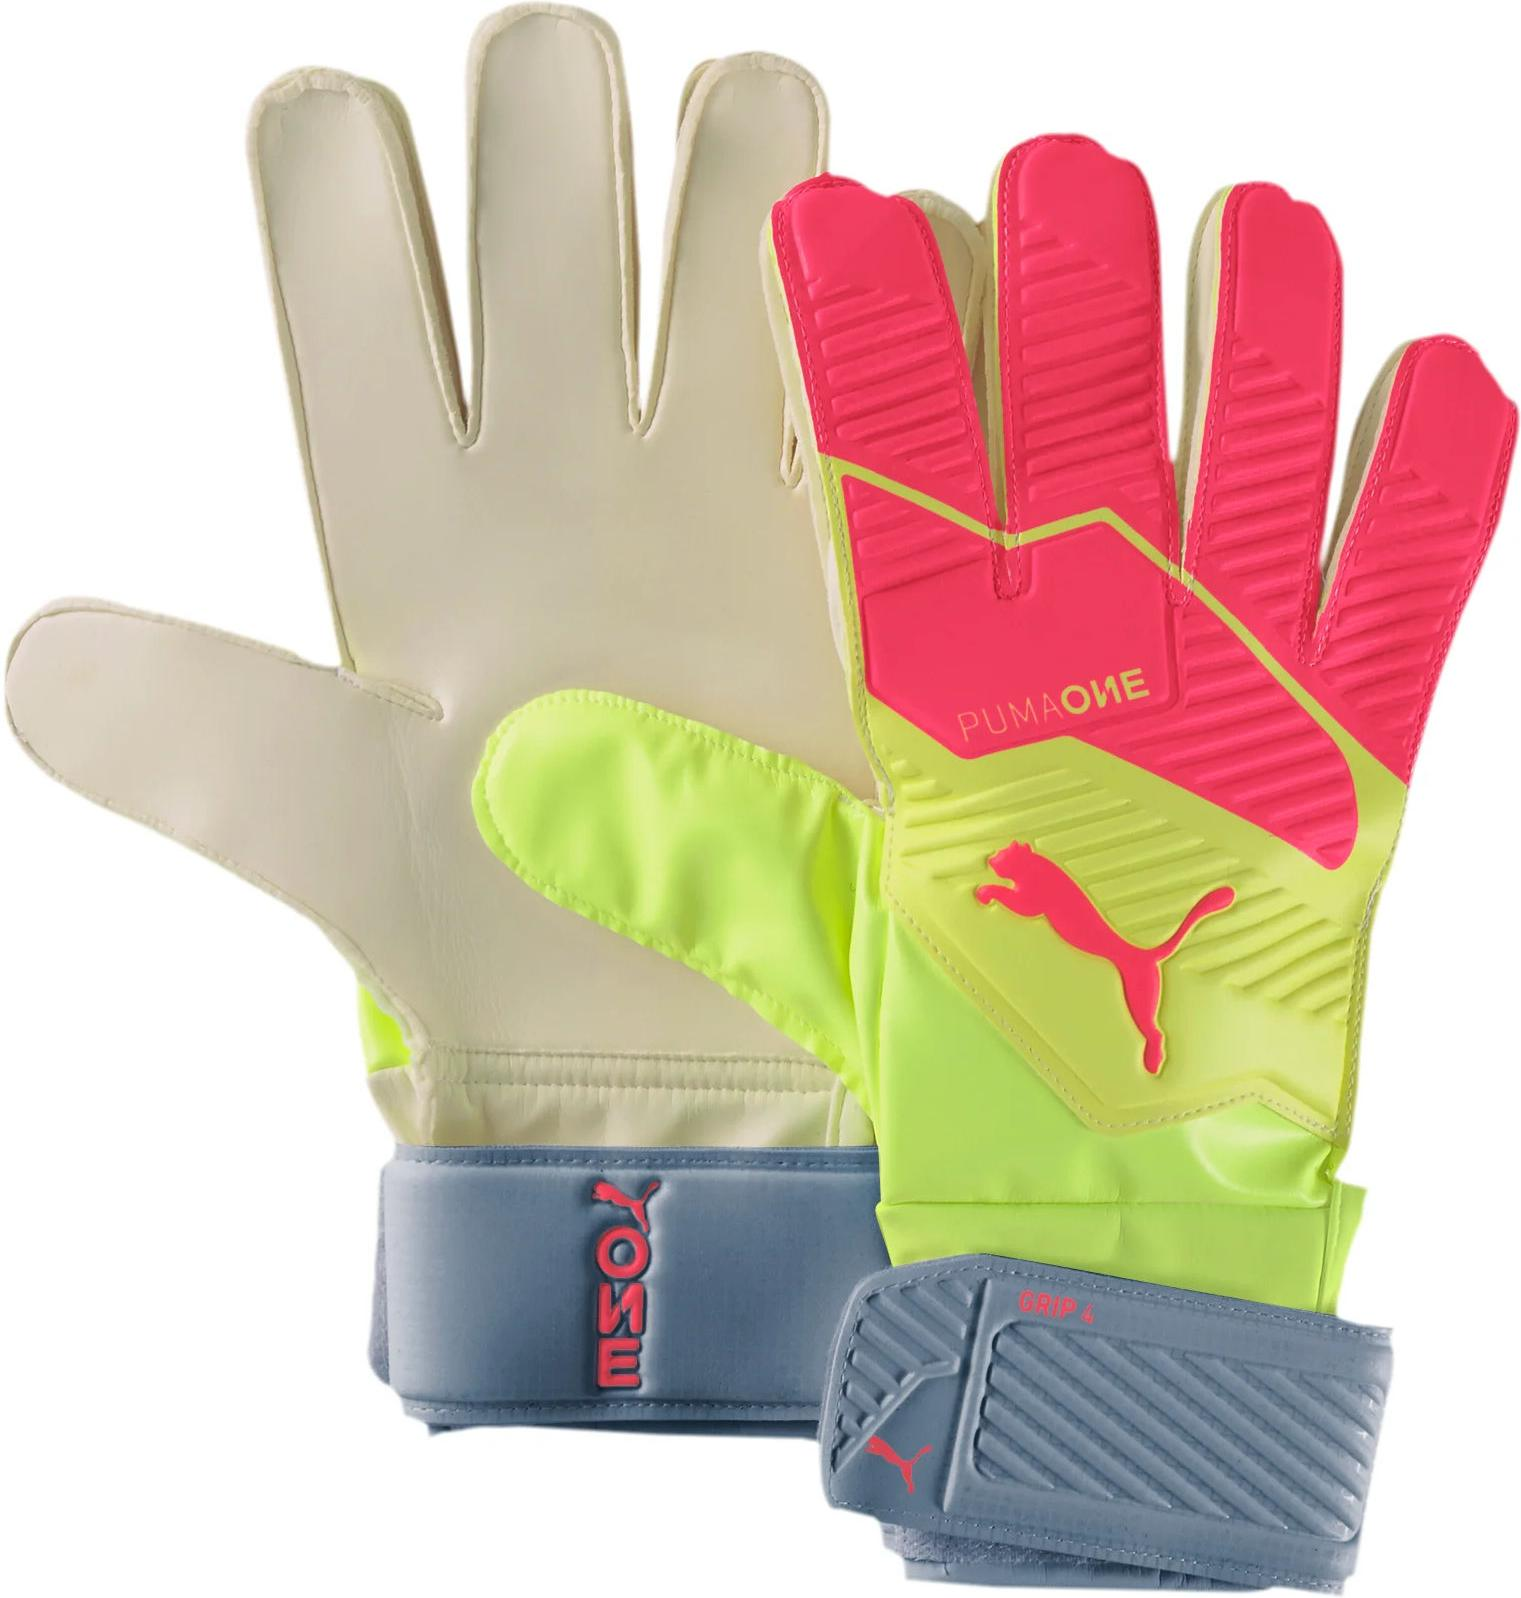 Puma One Grip 4 RC Kapuskesztyű